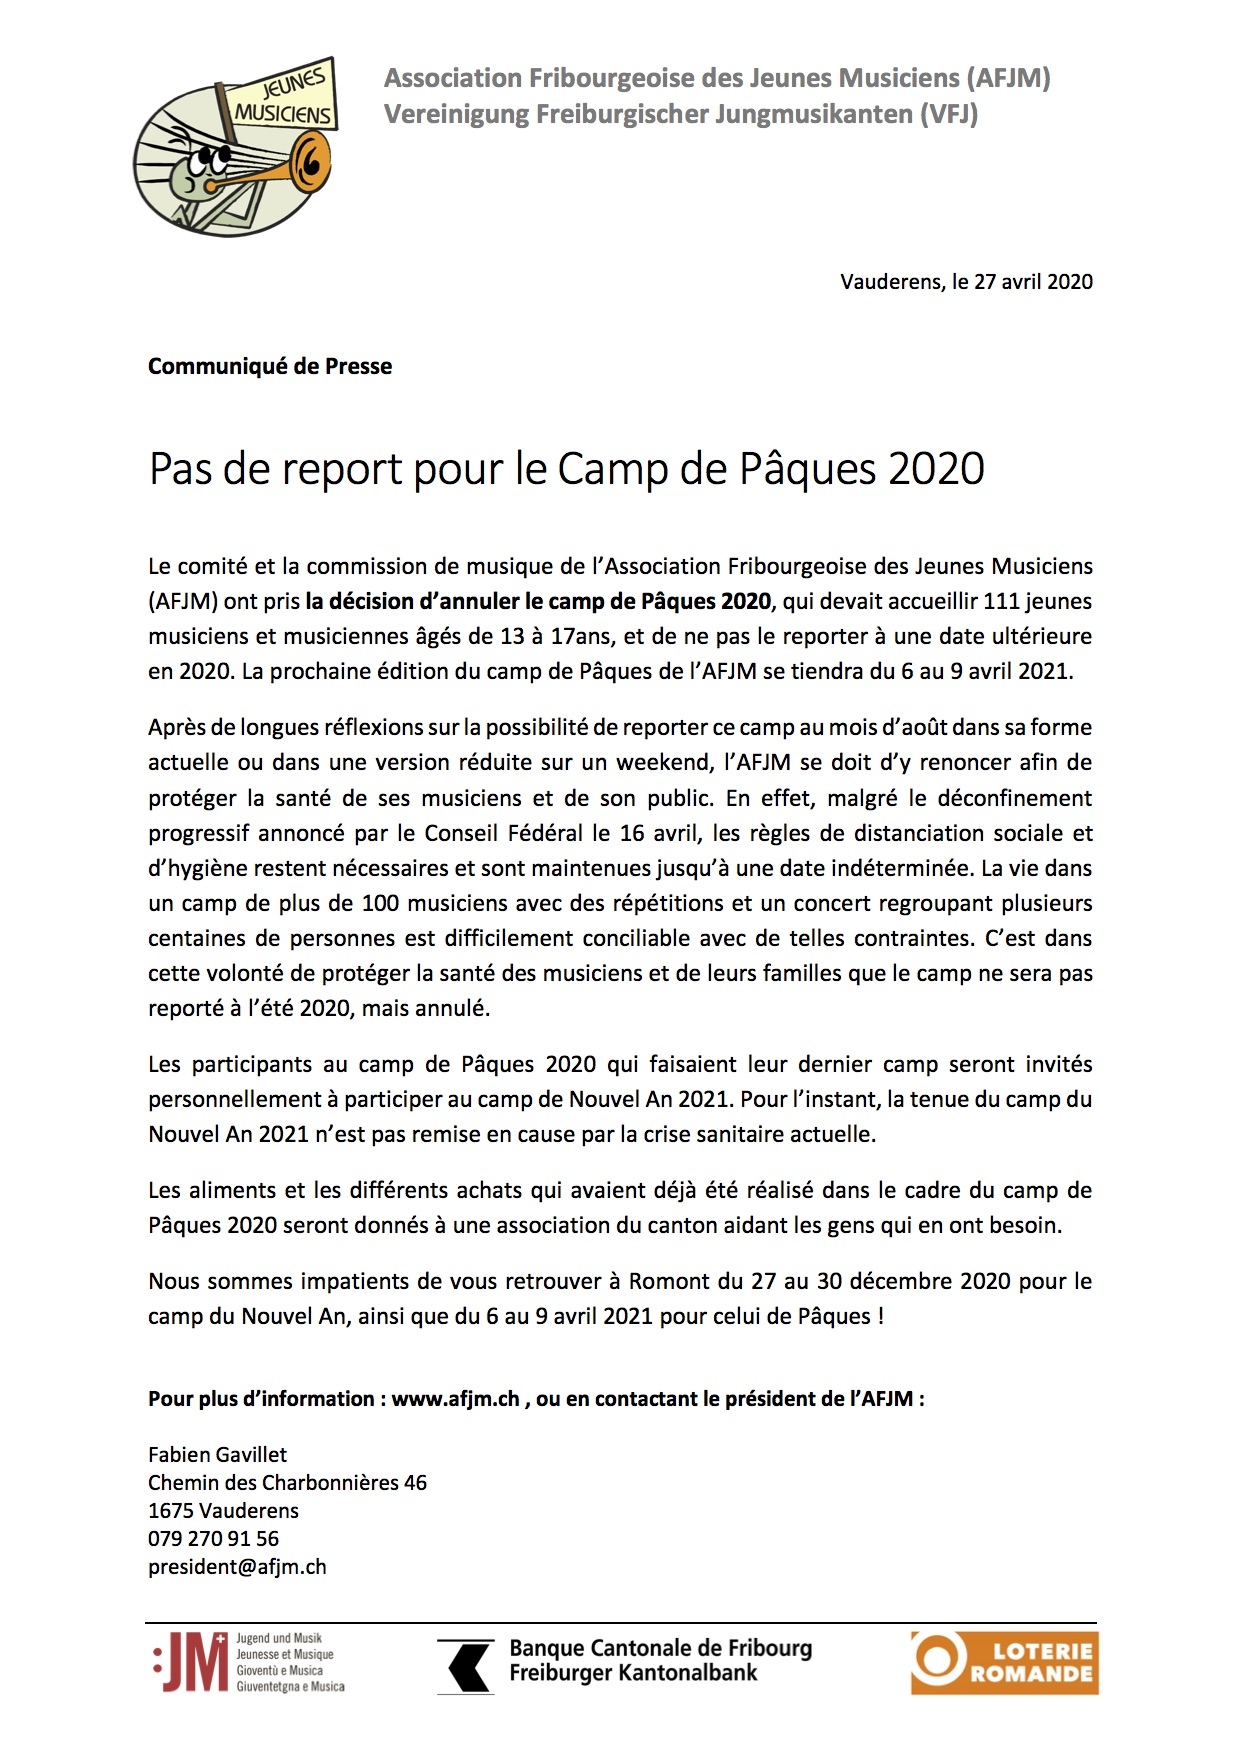 AFJM Annulation camp paques 2020